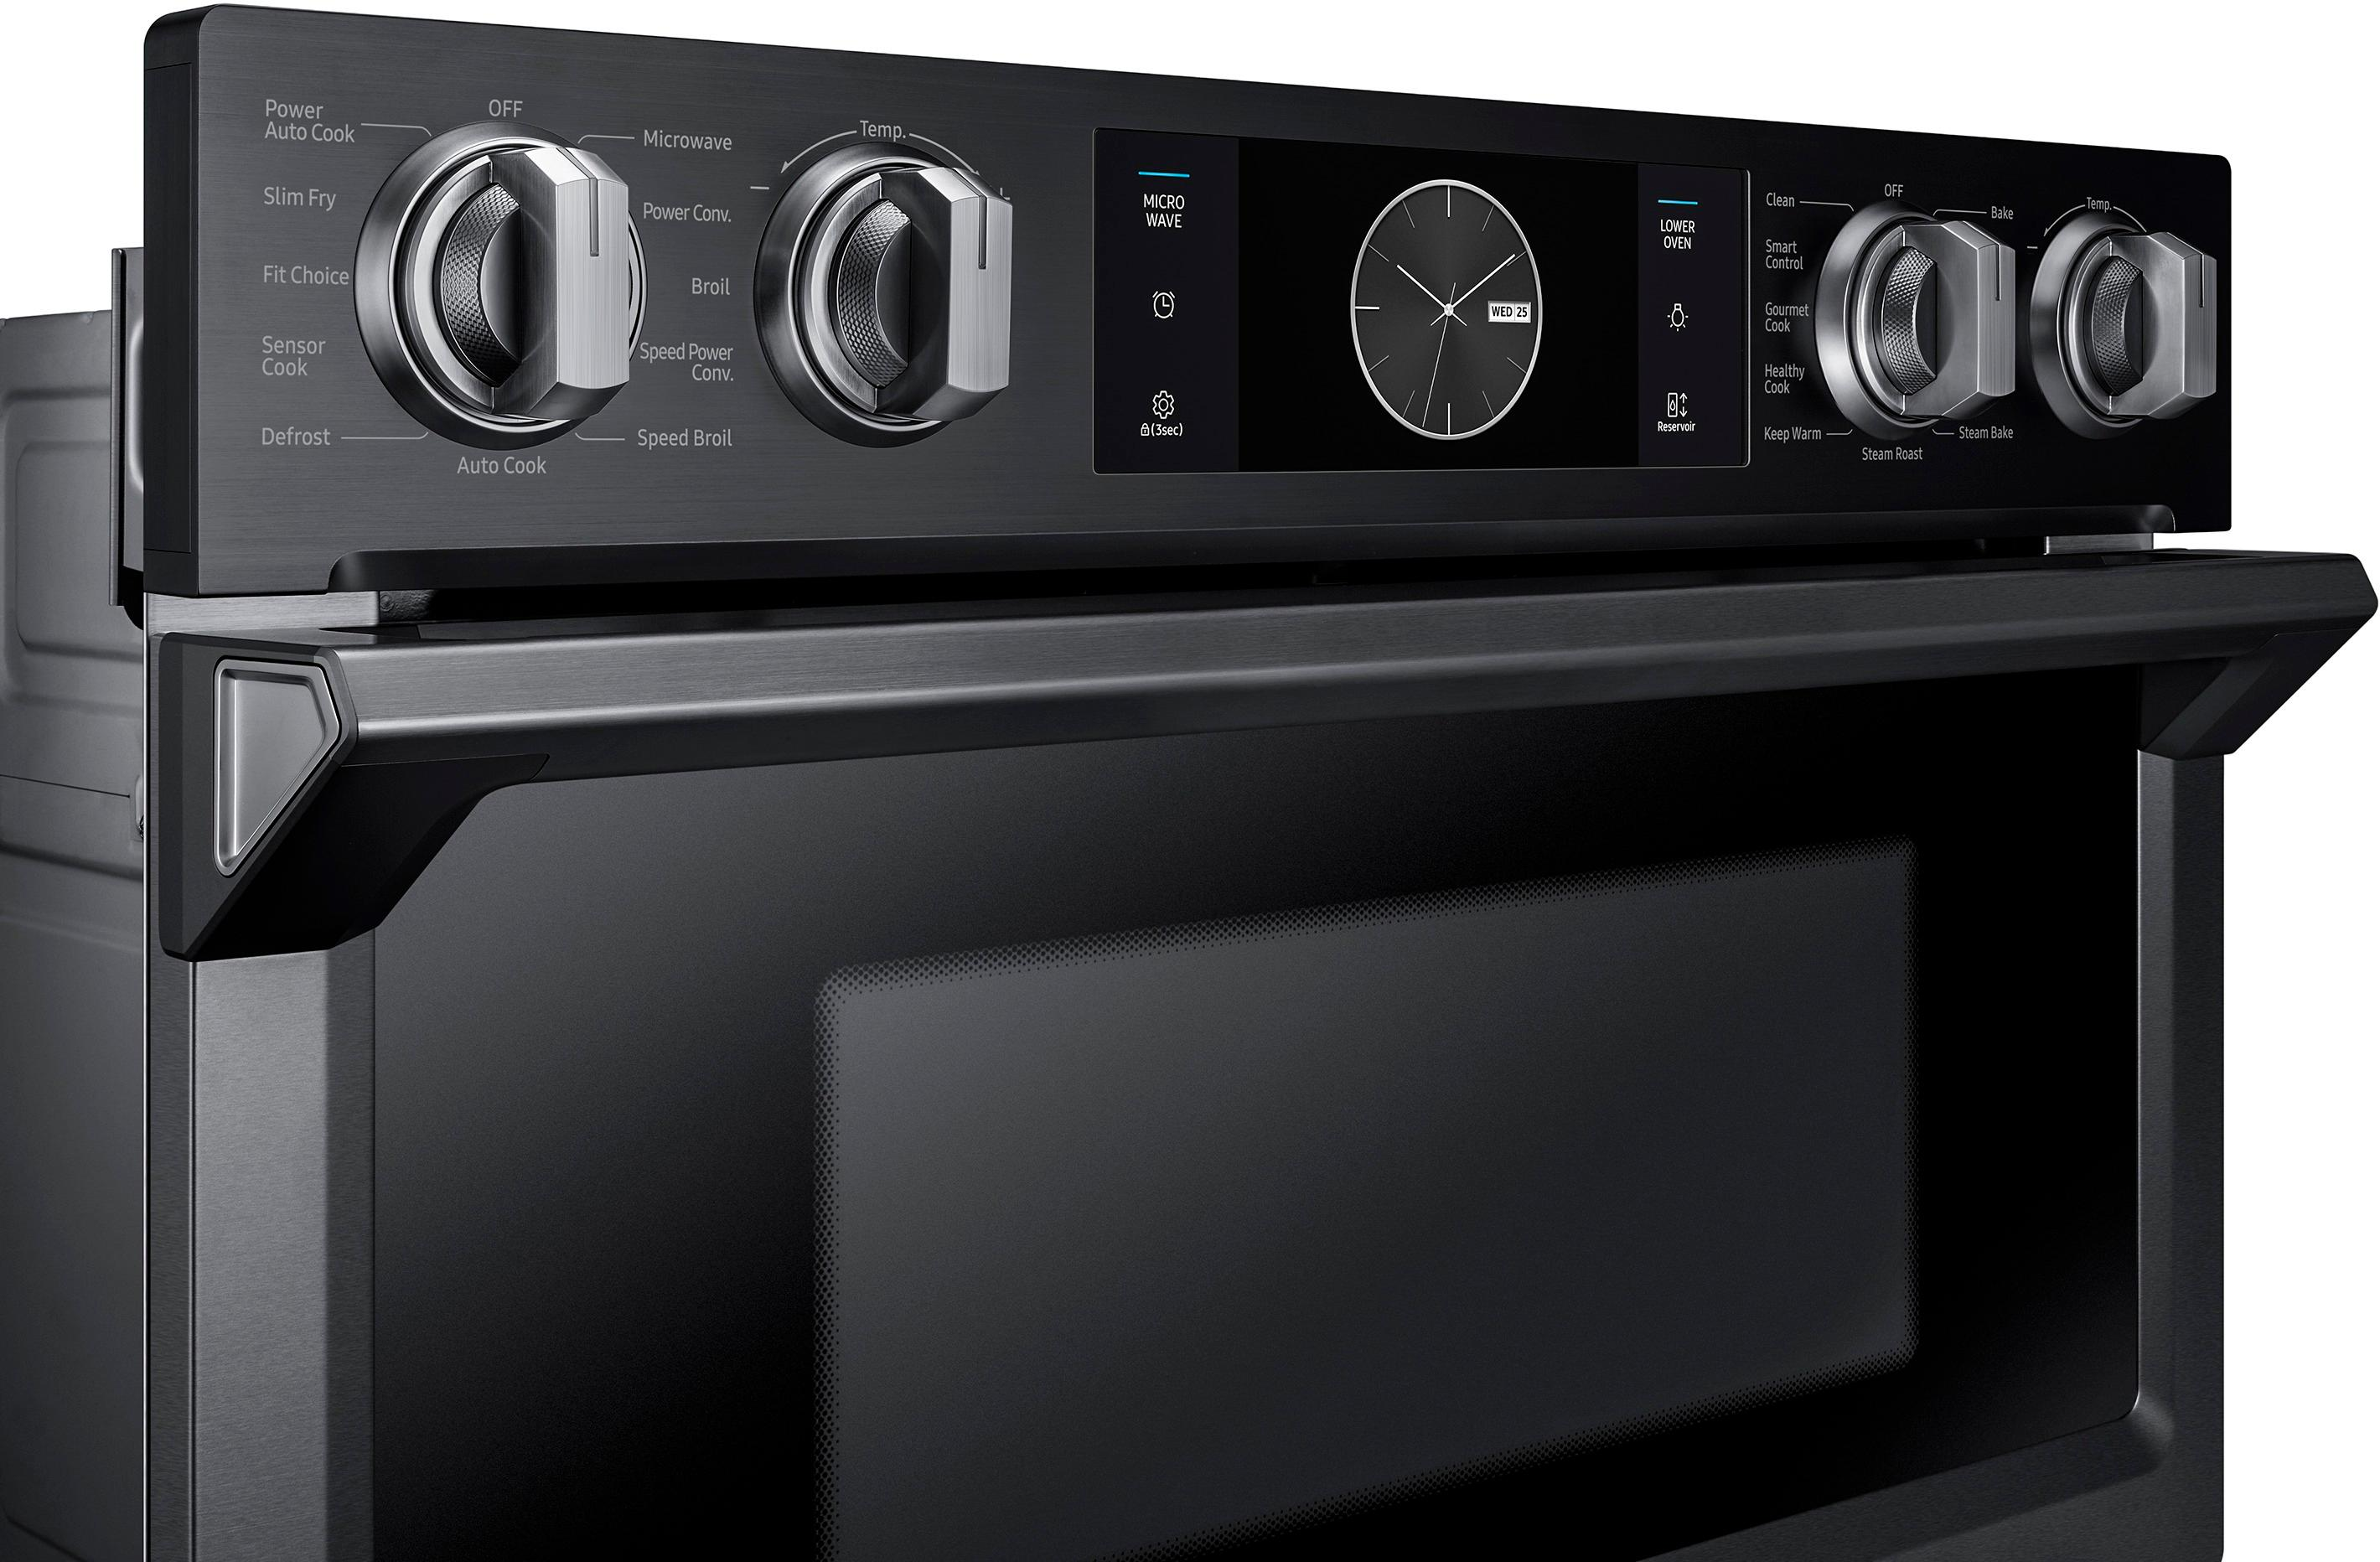 The Samsung Microwave Combination Wall Oven at Best Buy